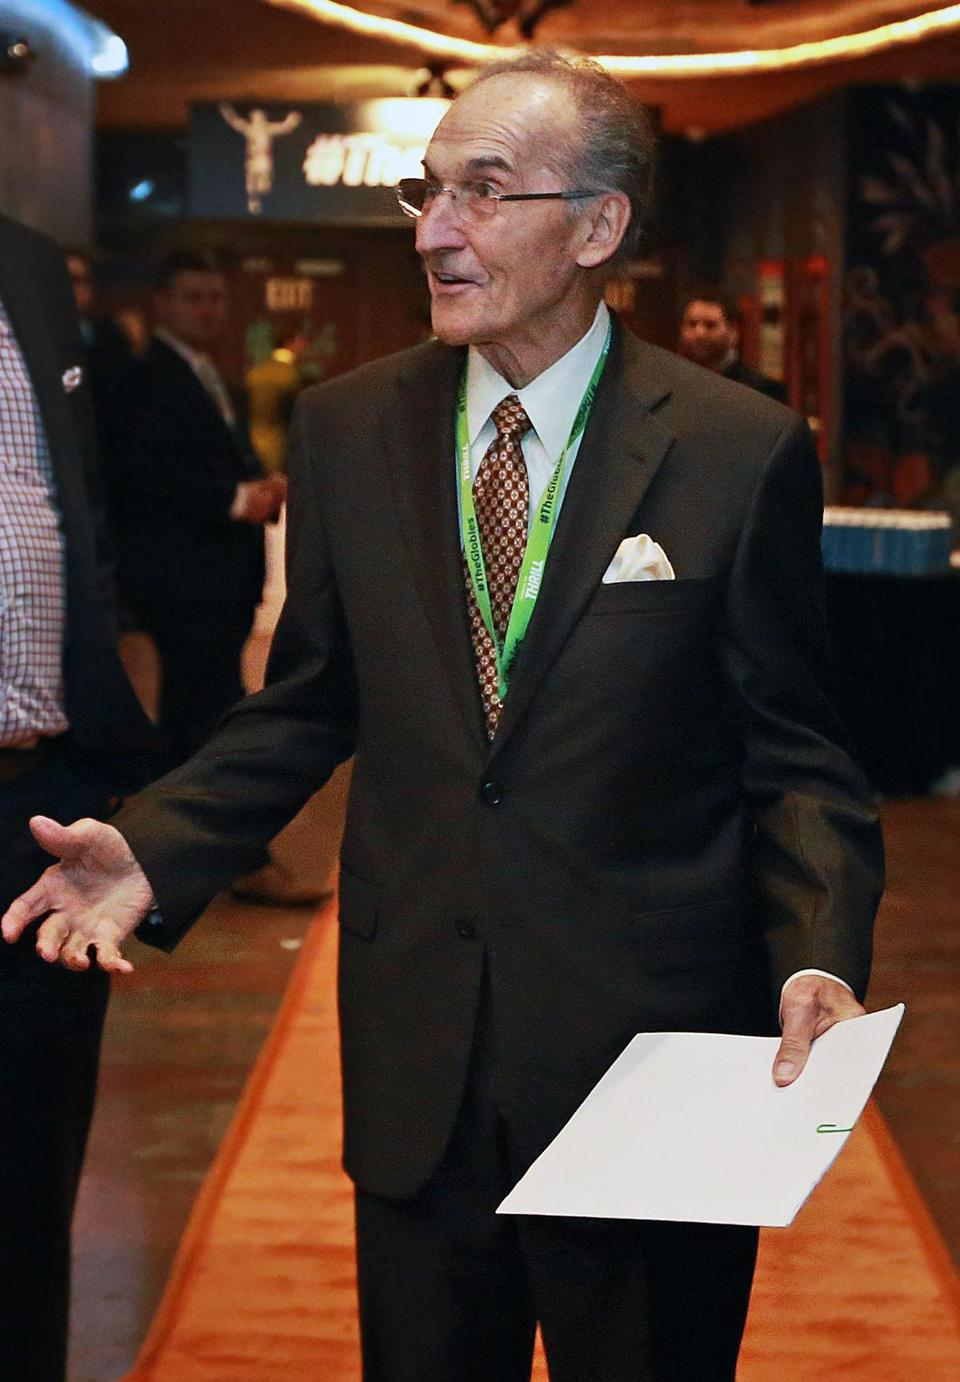 Former Patriots star and broadcaster Gino Cappelletti was honored at the Globies.